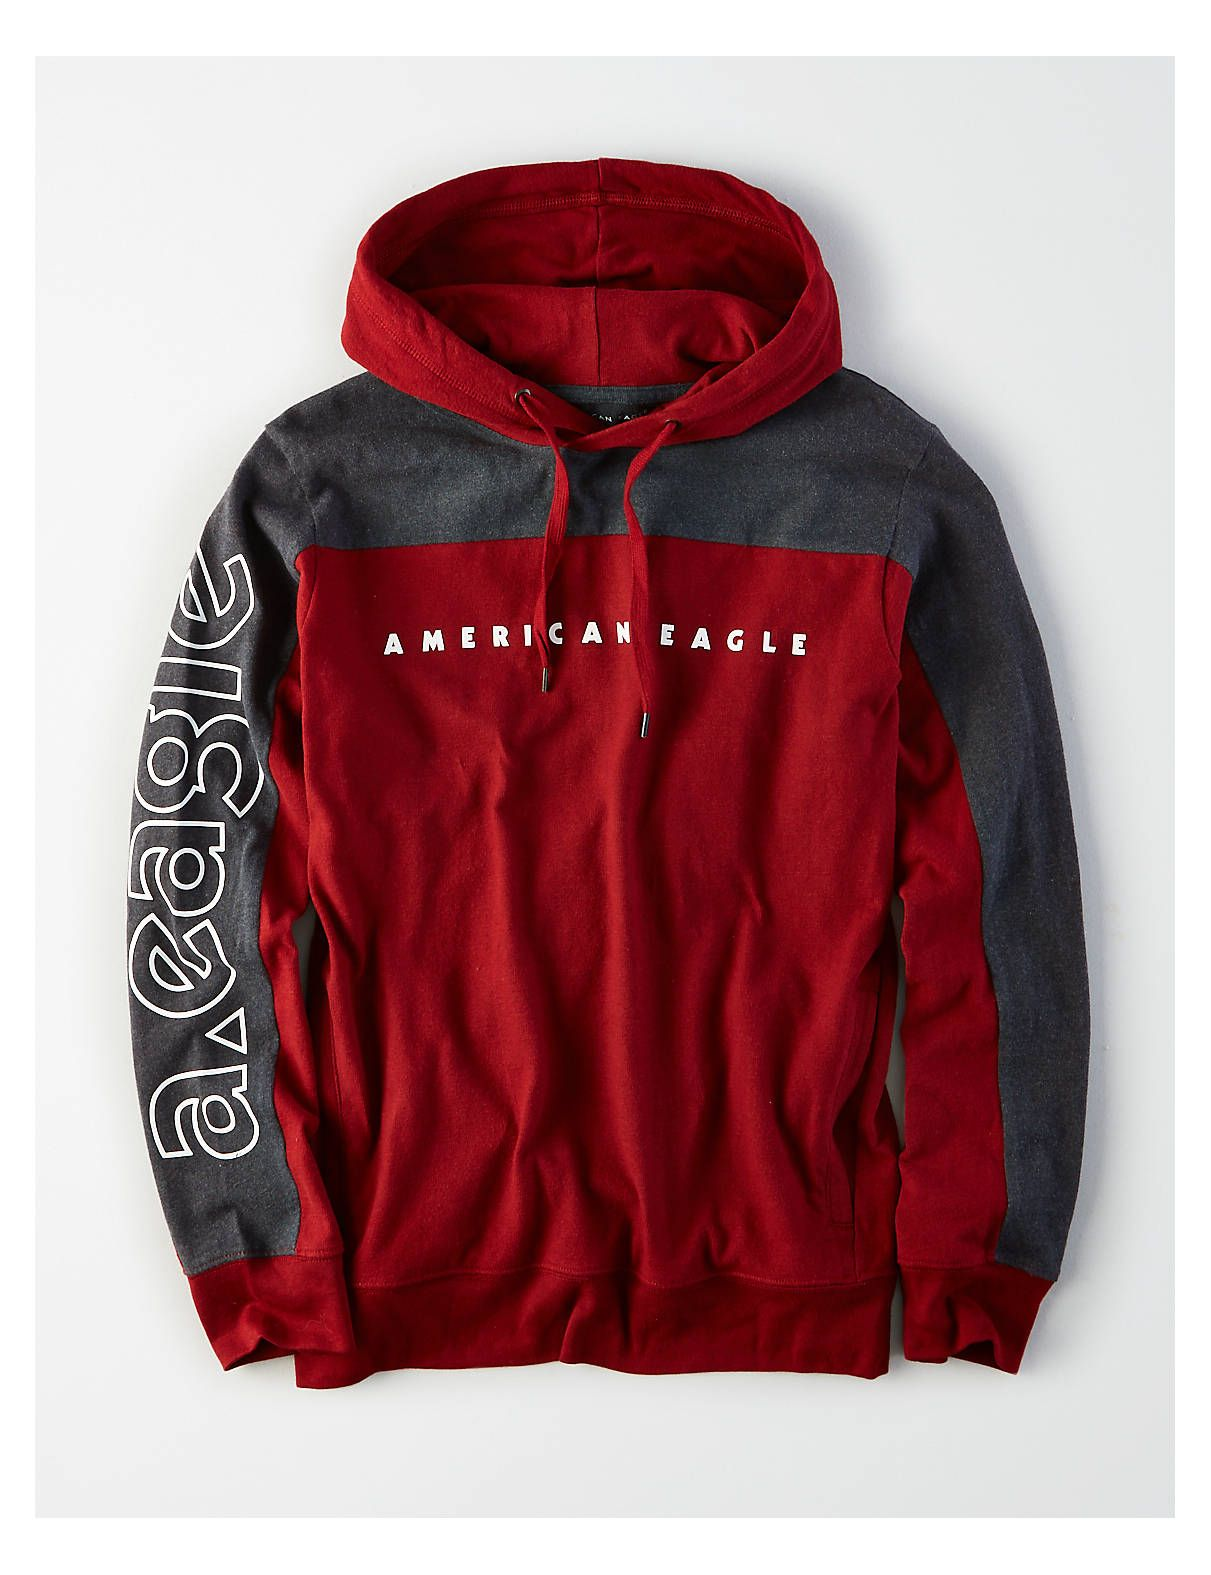 Ae Graphic Hoodie Tee Red American Eagle Outfitters Hoodies Men Style Hoodie Outfit Men Men Fashion Casual Outfits [ 1575 x 1211 Pixel ]